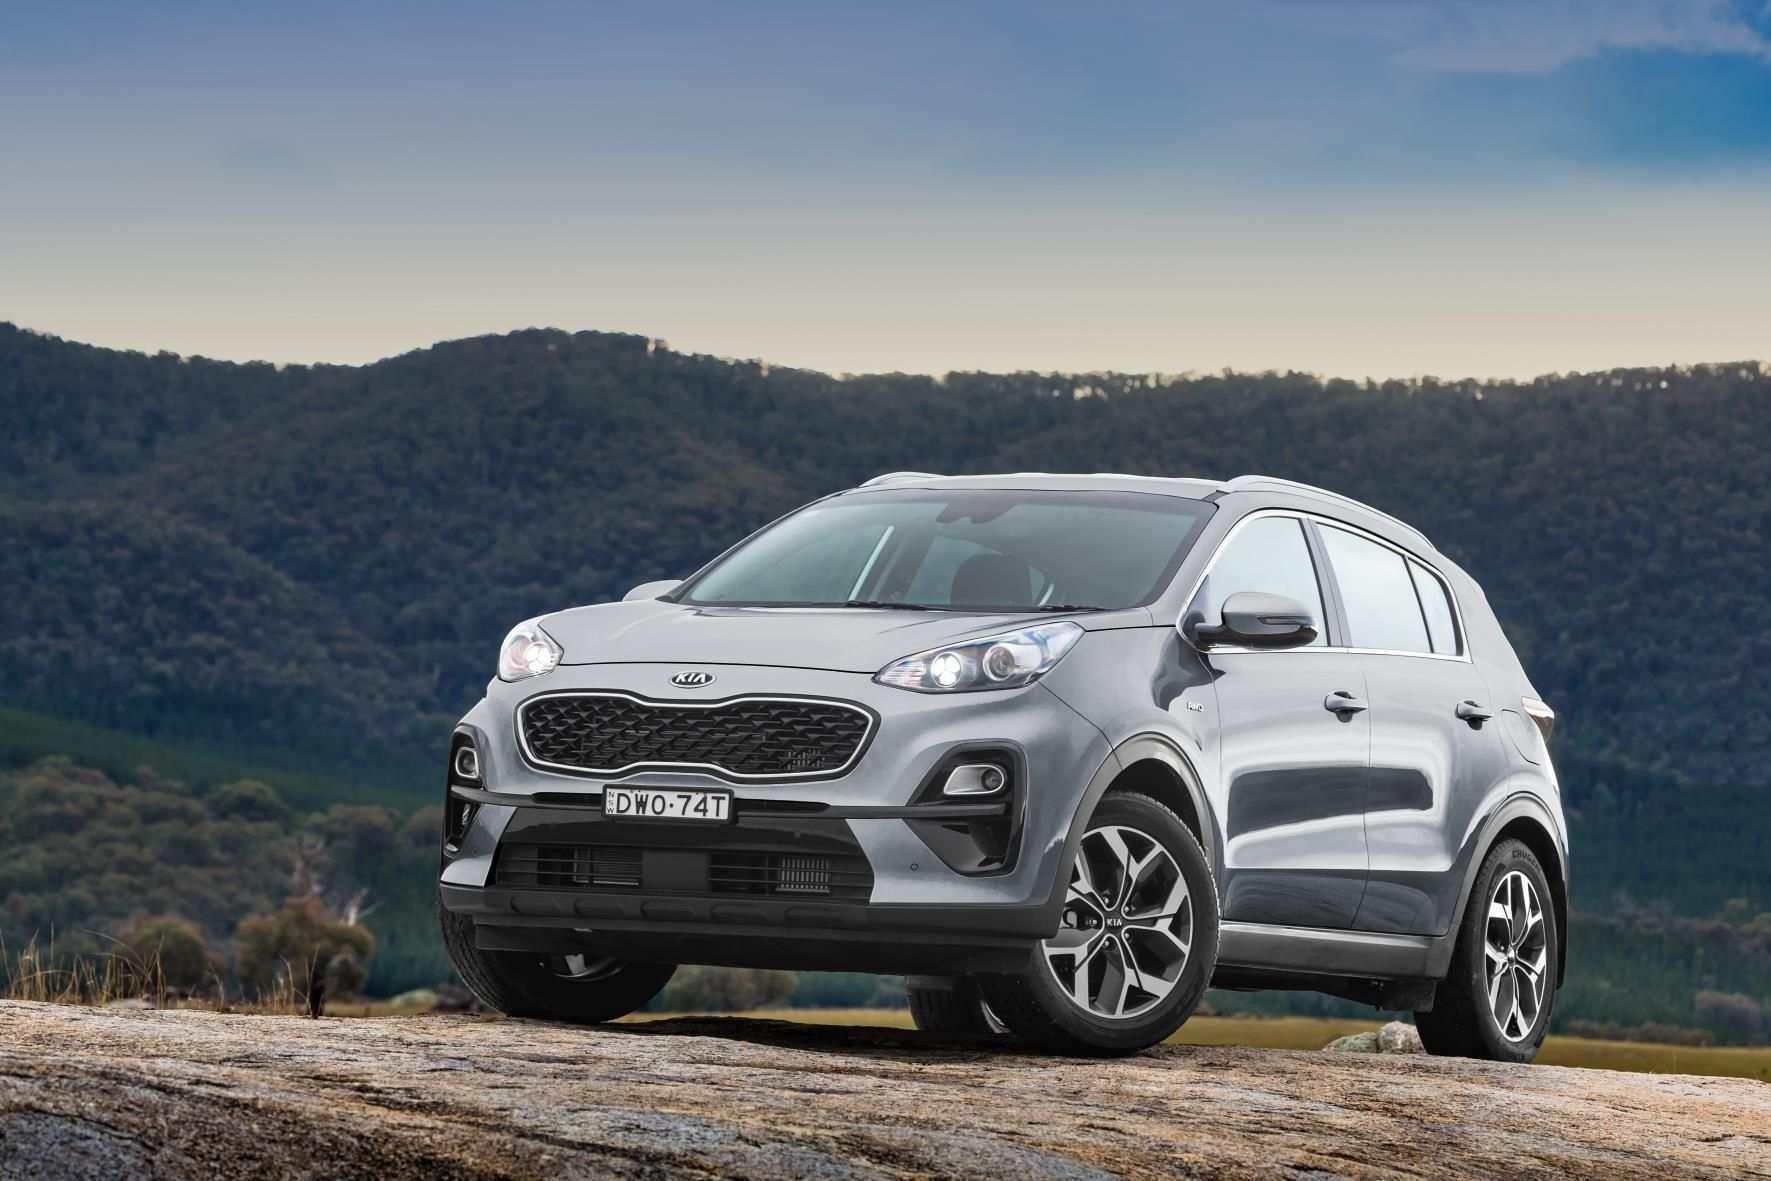 16 Gallery of The Kia Sportage Gt Line 2019 Review And Specs Release by The Kia Sportage Gt Line 2019 Review And Specs